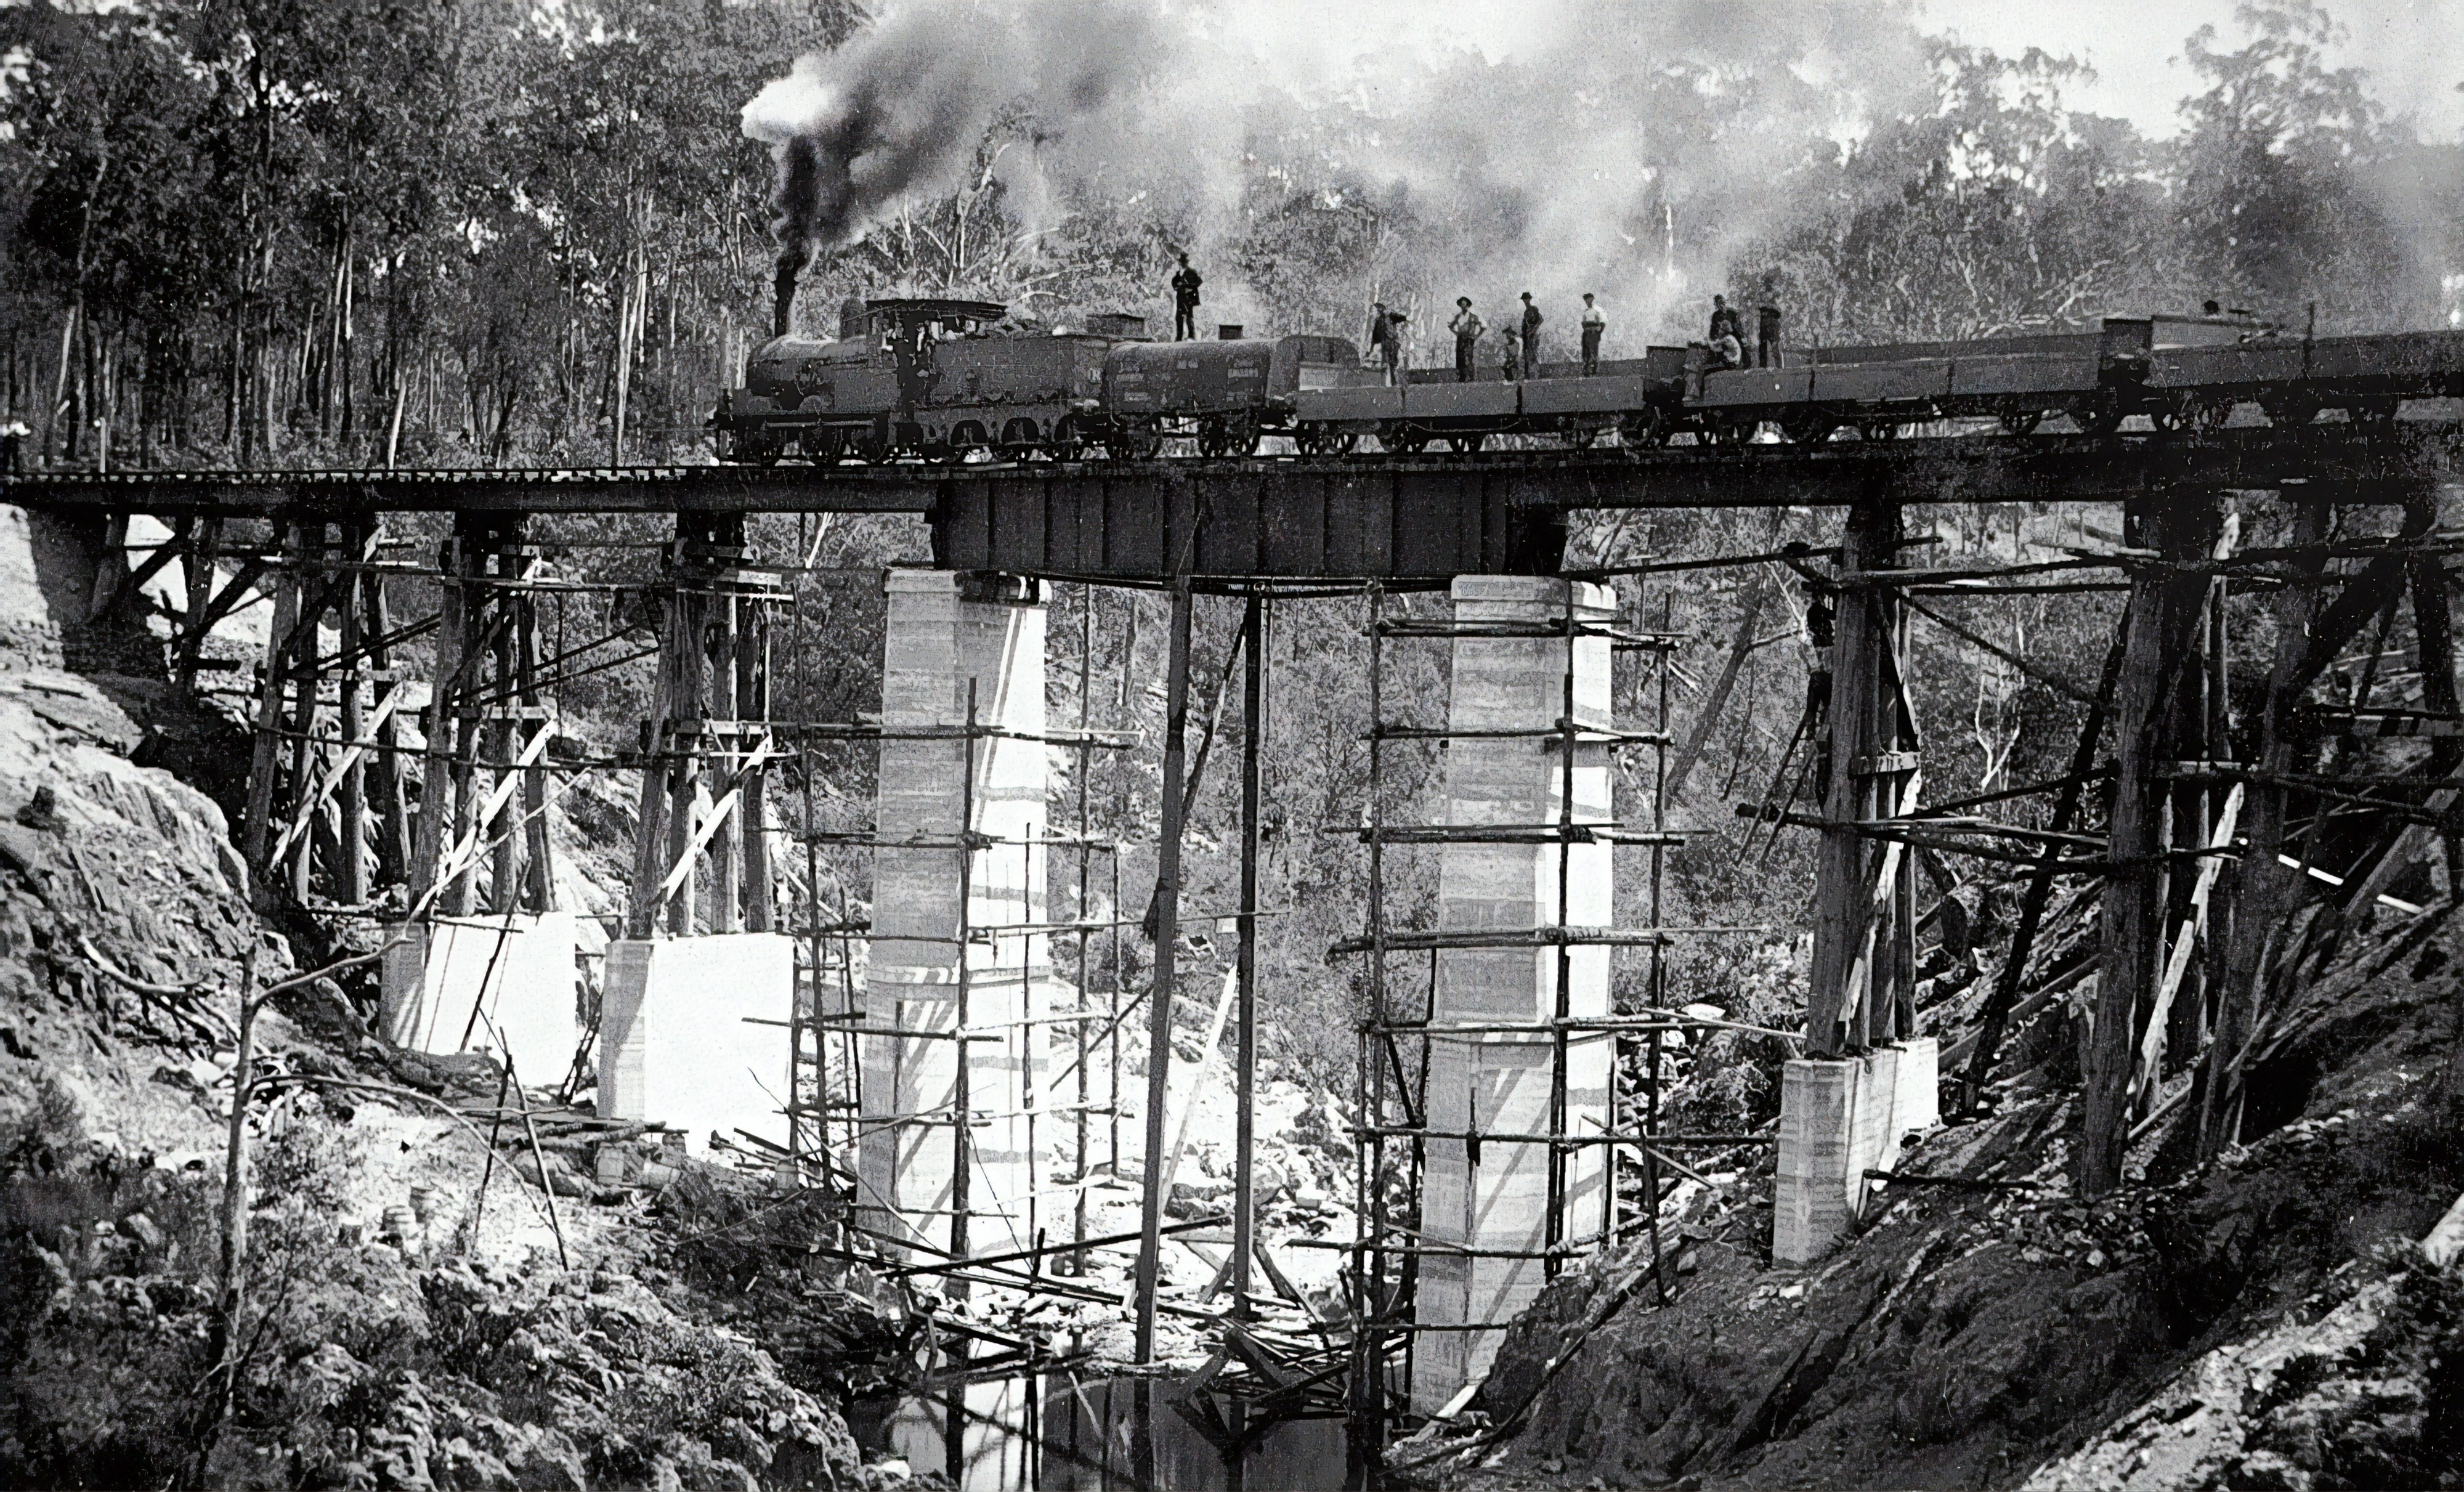 an old picture of a steam engine train on a rickety old bridge